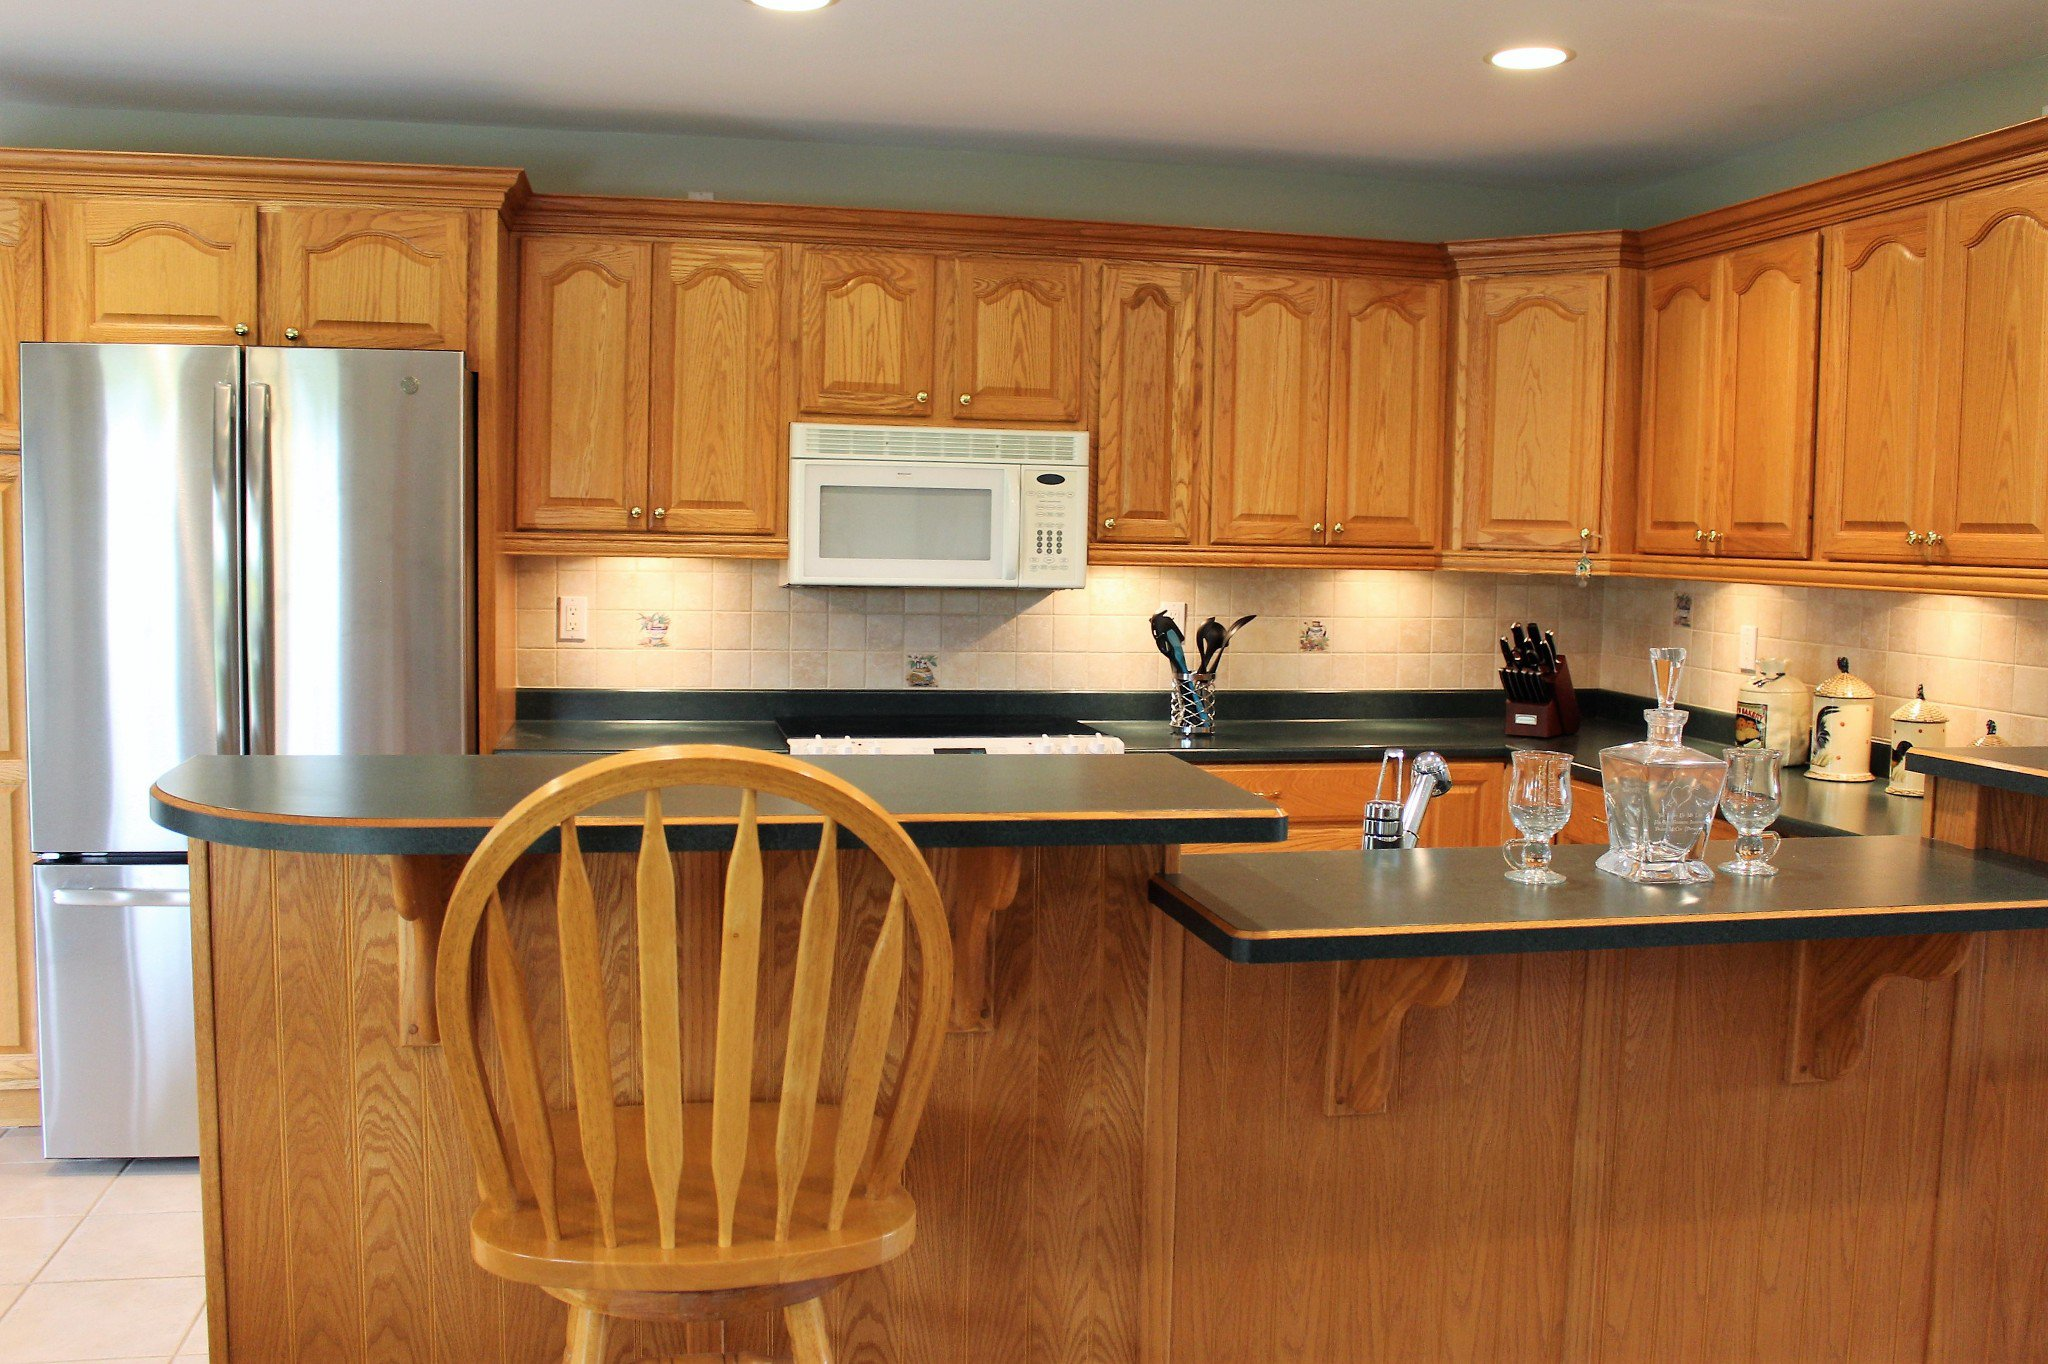 Photo 14: Photos: 159 Nawautin Drive in Grafton: Residential Detached for sale : MLS®# 40012652